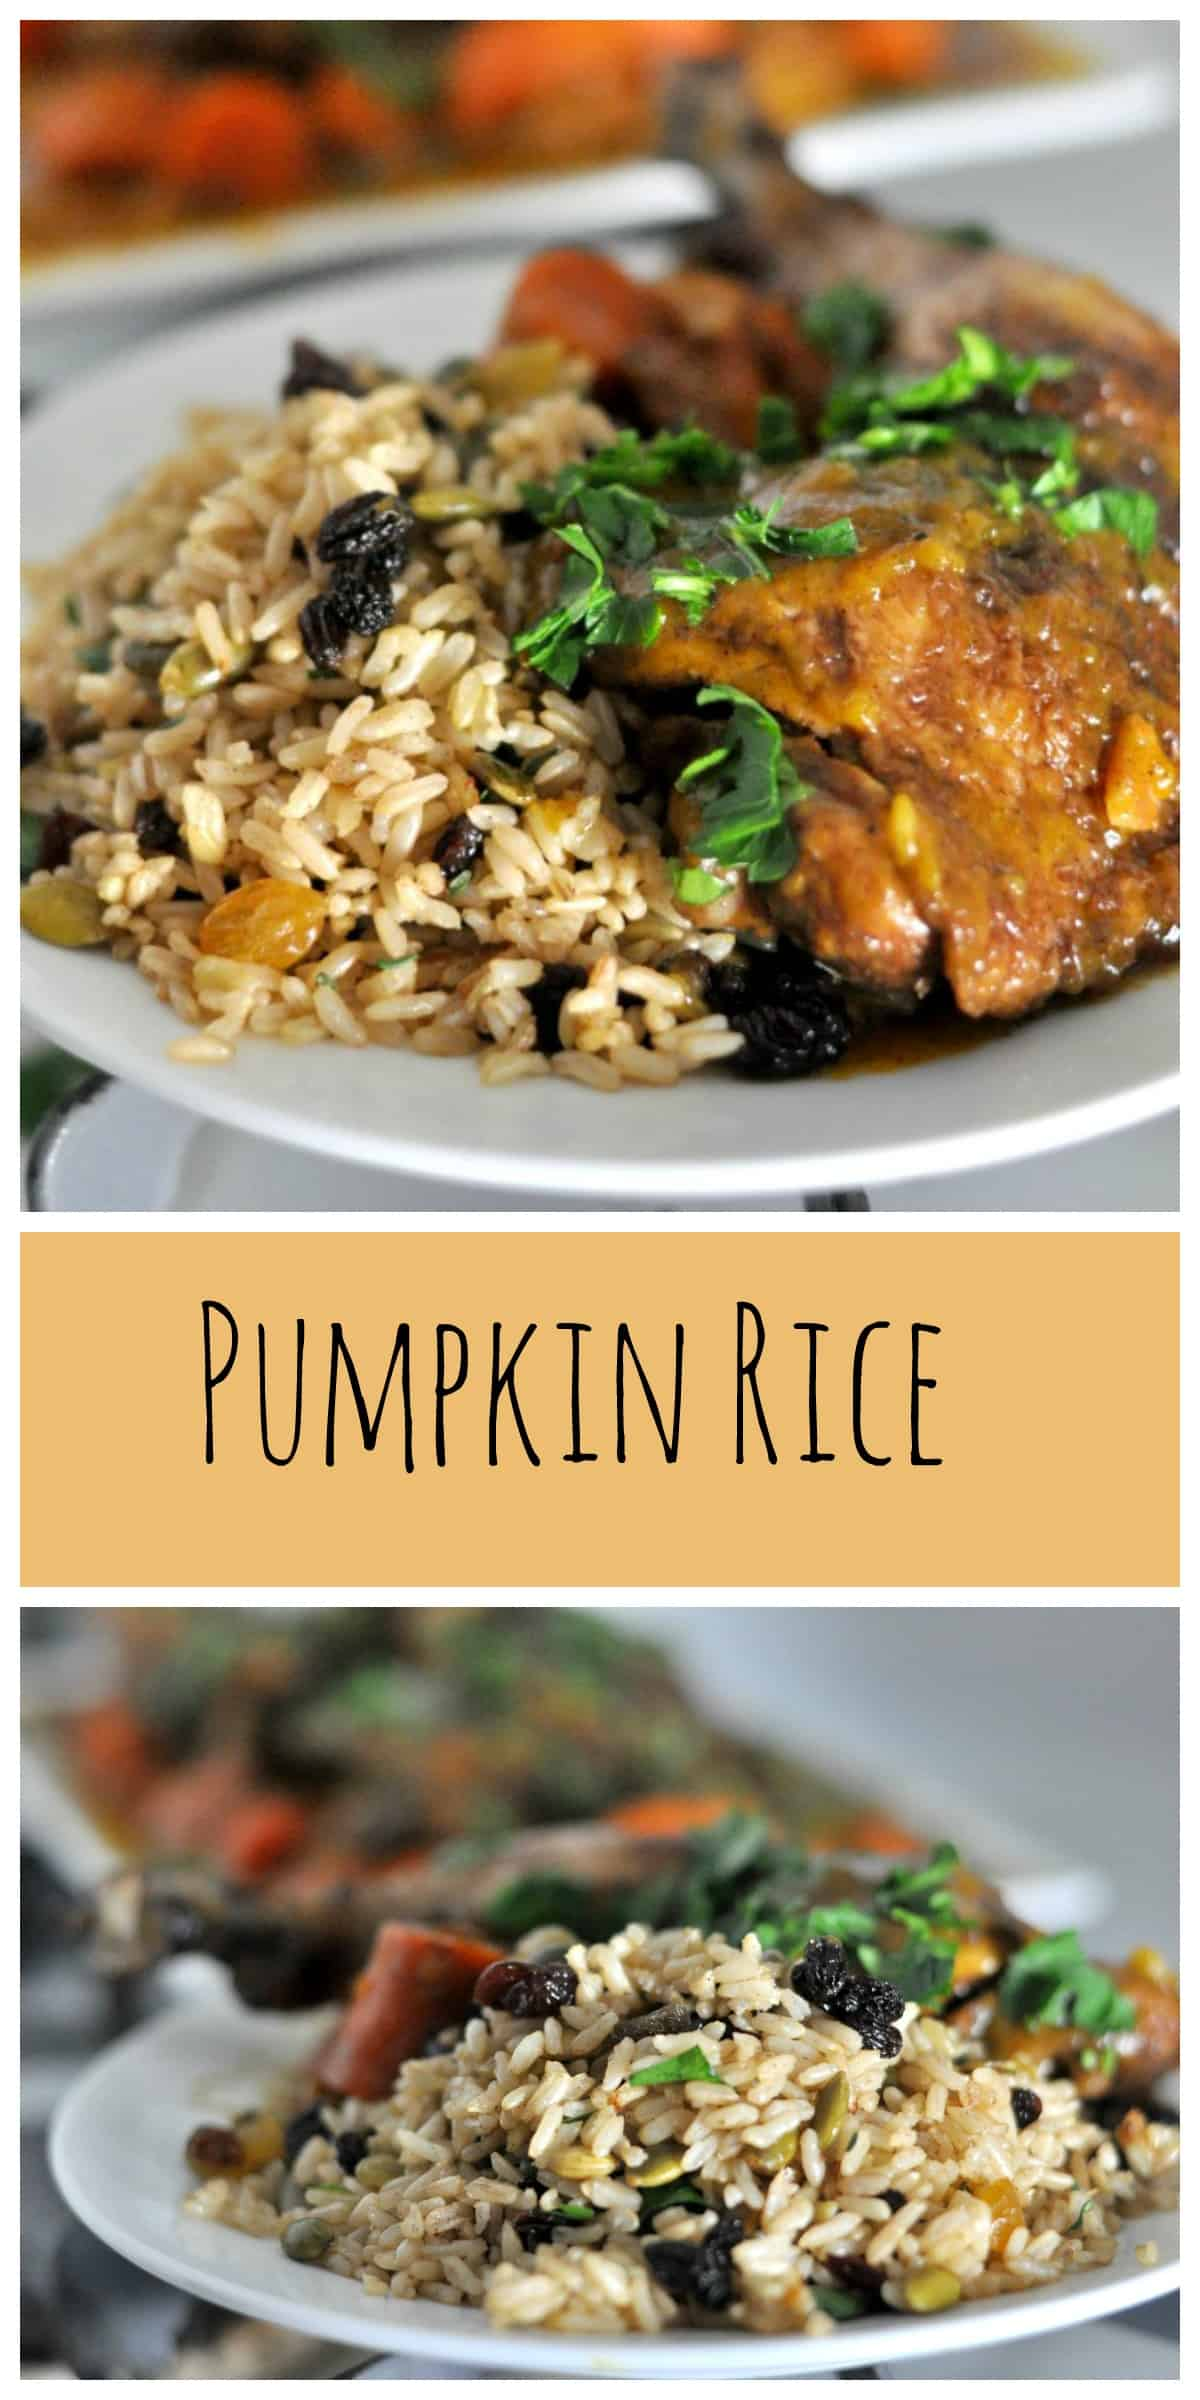 Pumpkin Rice is a perfect side dish filled with pumpkin spice, pumpkin seeds and dried fruit. #fall #pumpkin #chicken #autumn